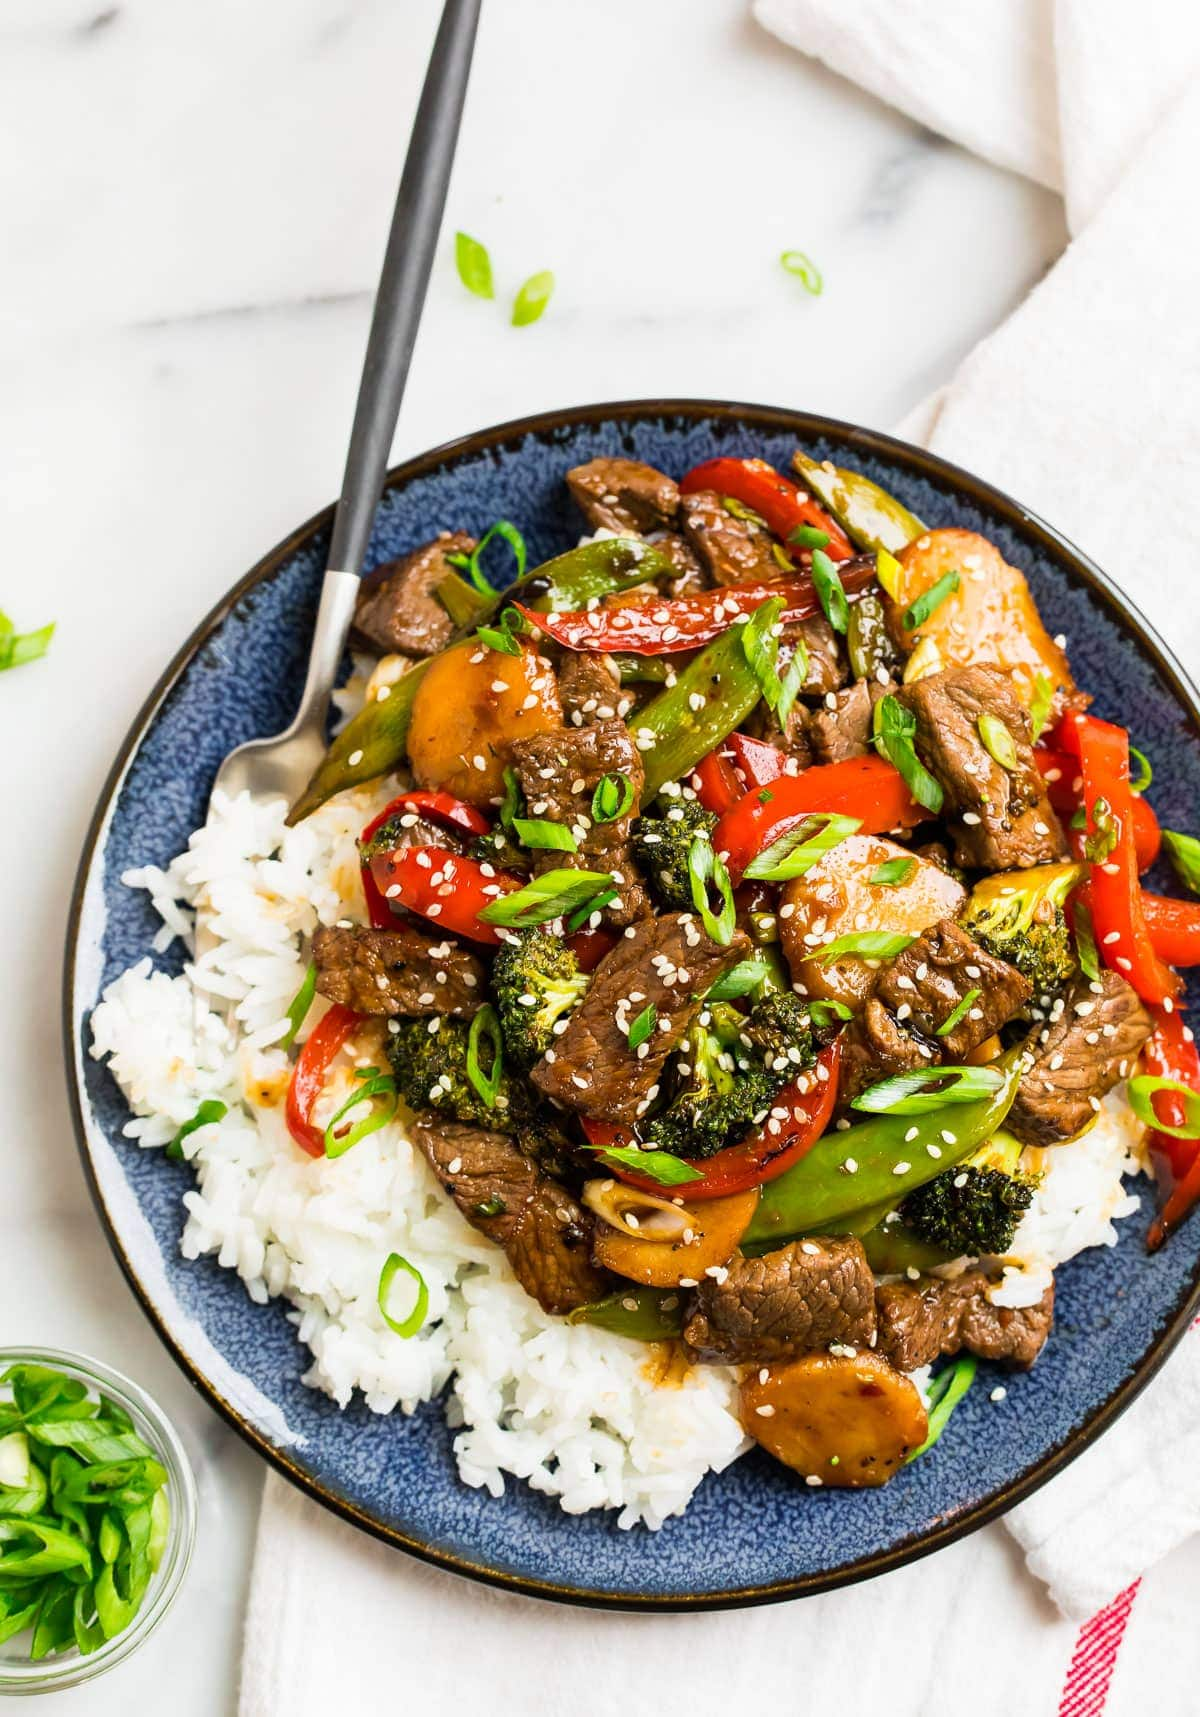 Teriyaki Beef Stir Fry topped with green onions